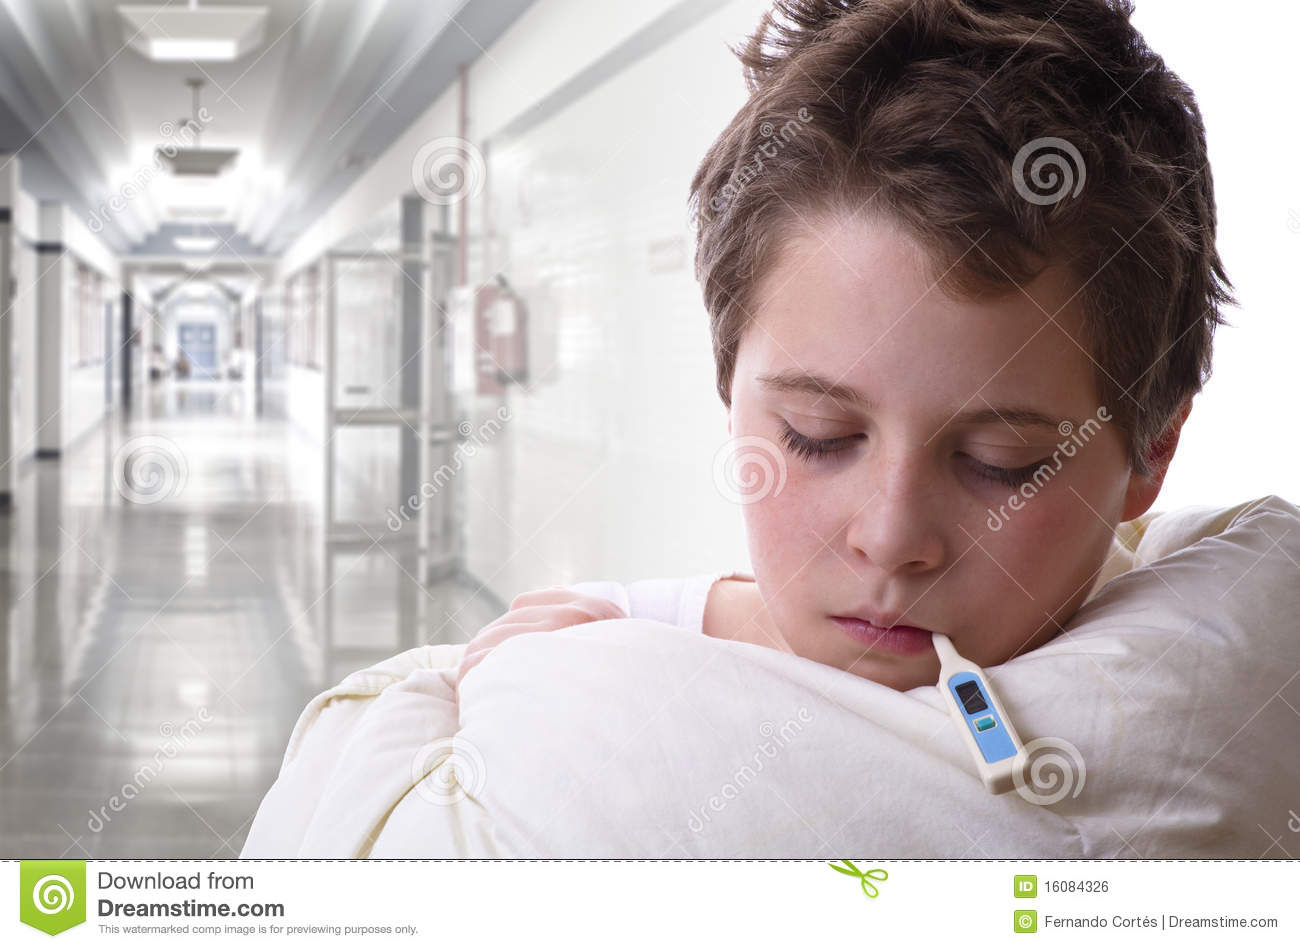 Sick In Hospital Images : Sick Child In Hospital Royalty Free Stock Image - Image: 16084326